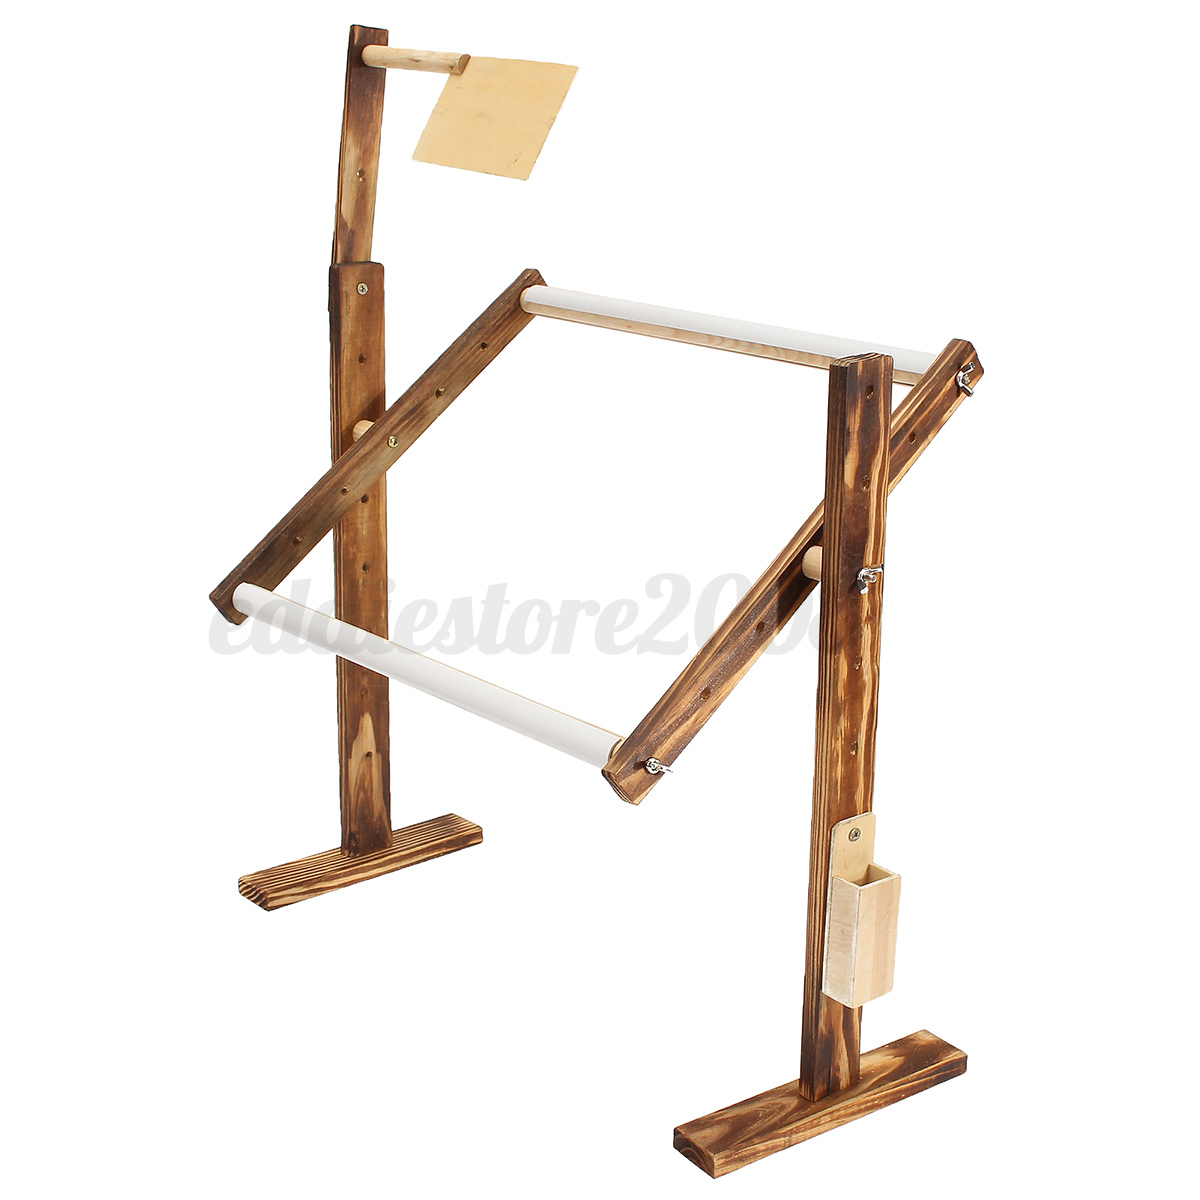 Wood diy sewing tool embroidery frame floor stand holder